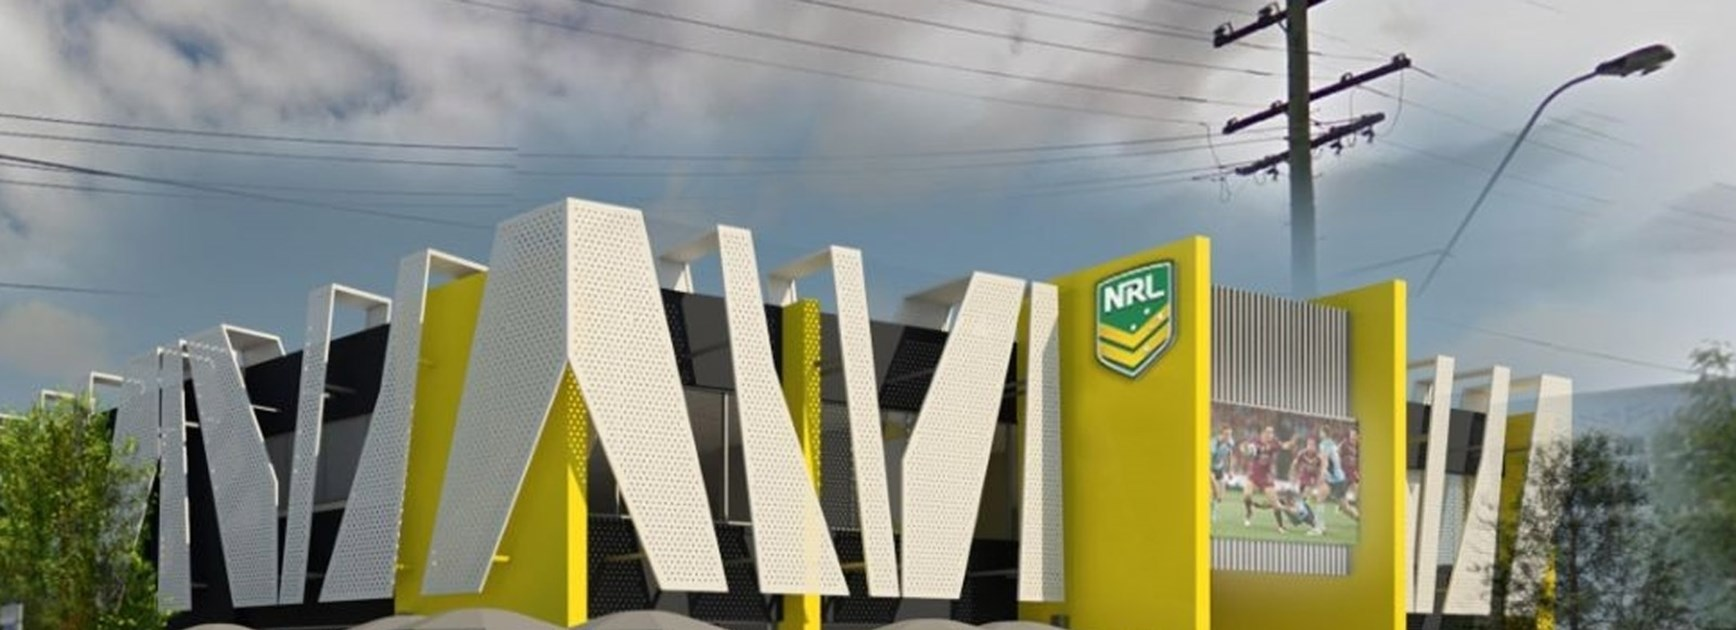 The key stakeholders of rugby league in Queensland will all be under one roof with a new centre to be built next to Suncorp Stadium.